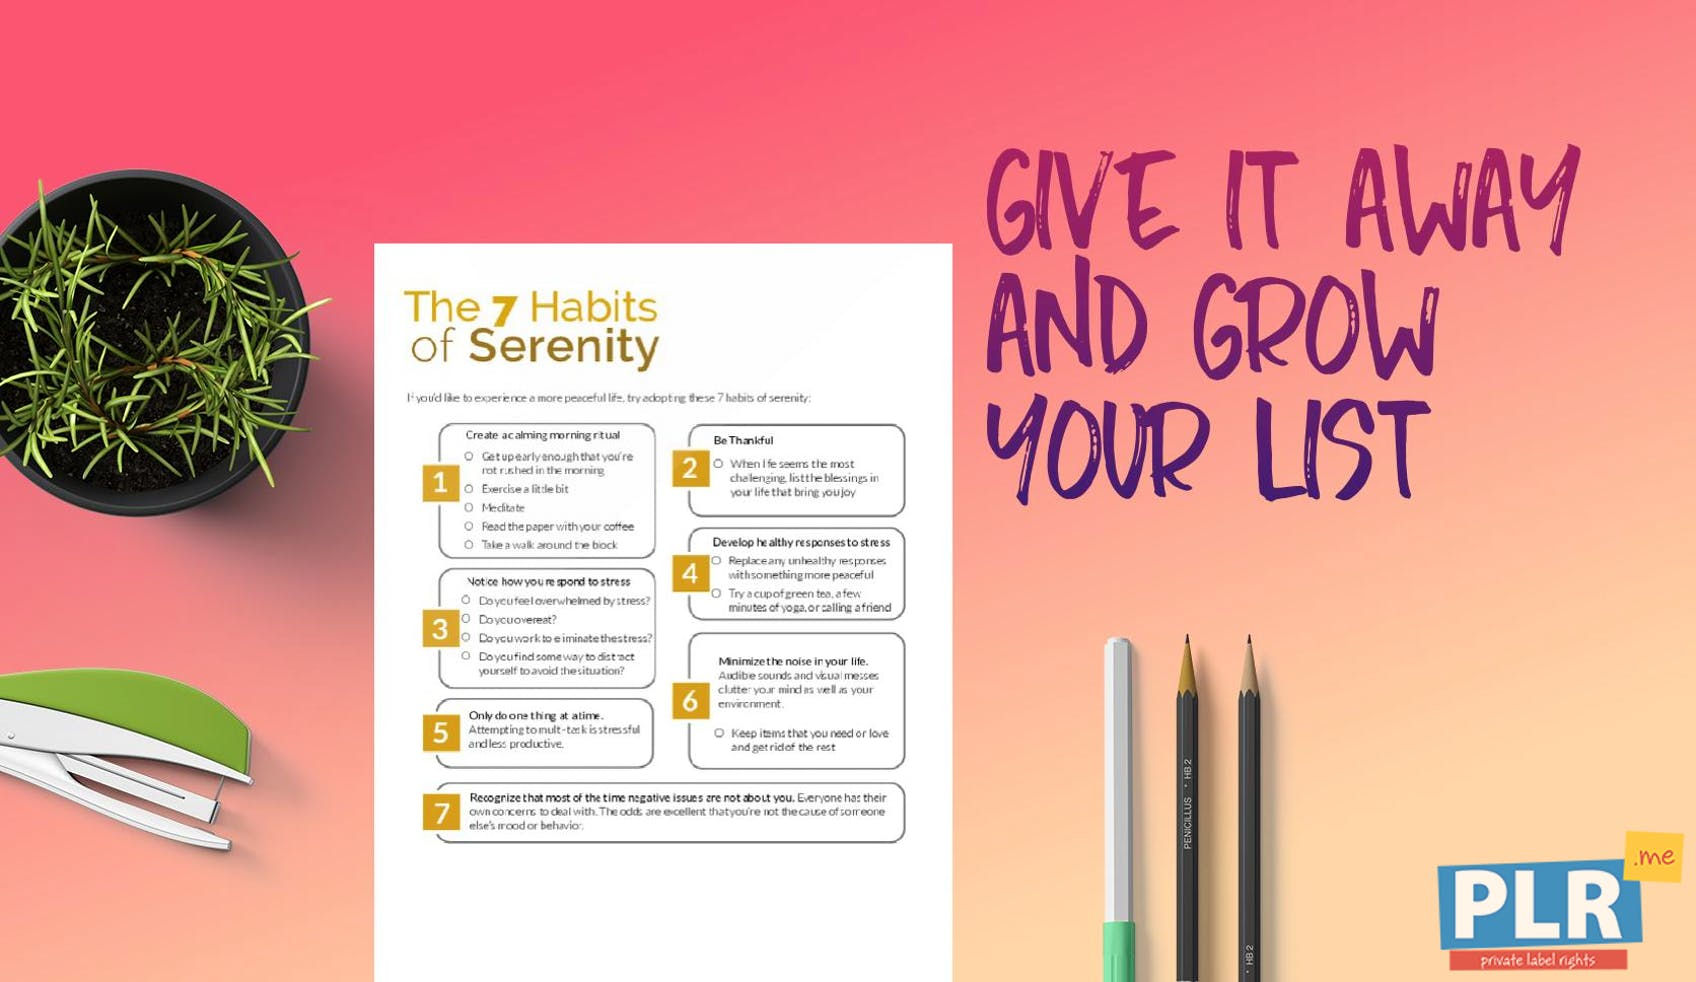 The 7 Habits Of Serenity